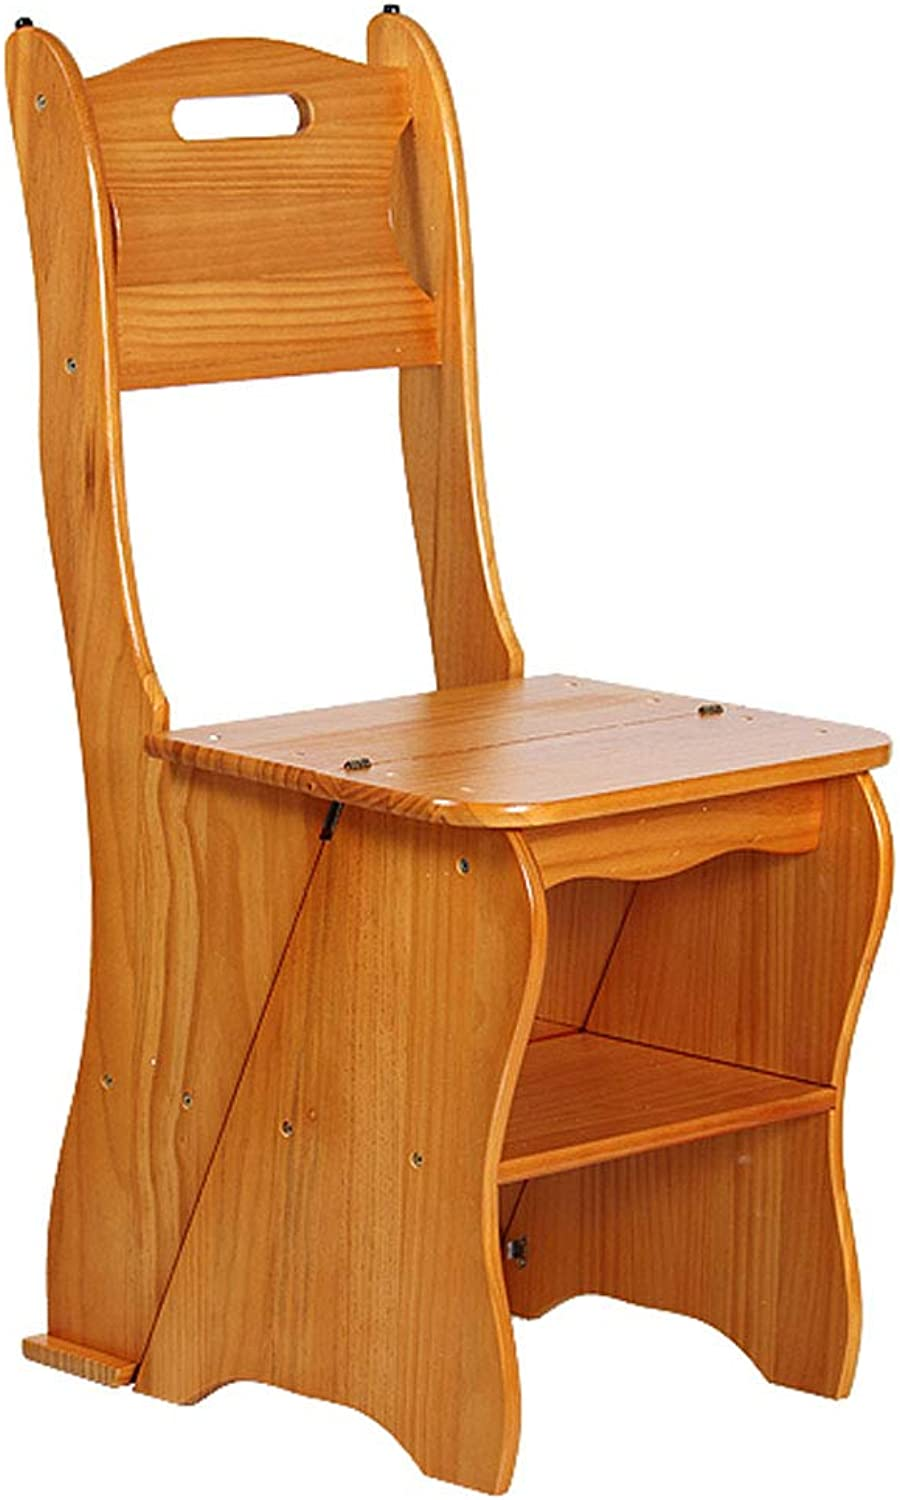 Solid Wood Step Stool Foldable 4-Step Ladder Chair Multi-Purpose Portable Stepladder Household Stair Chair Plant Racks Max Load 150KG (Height  85cm)